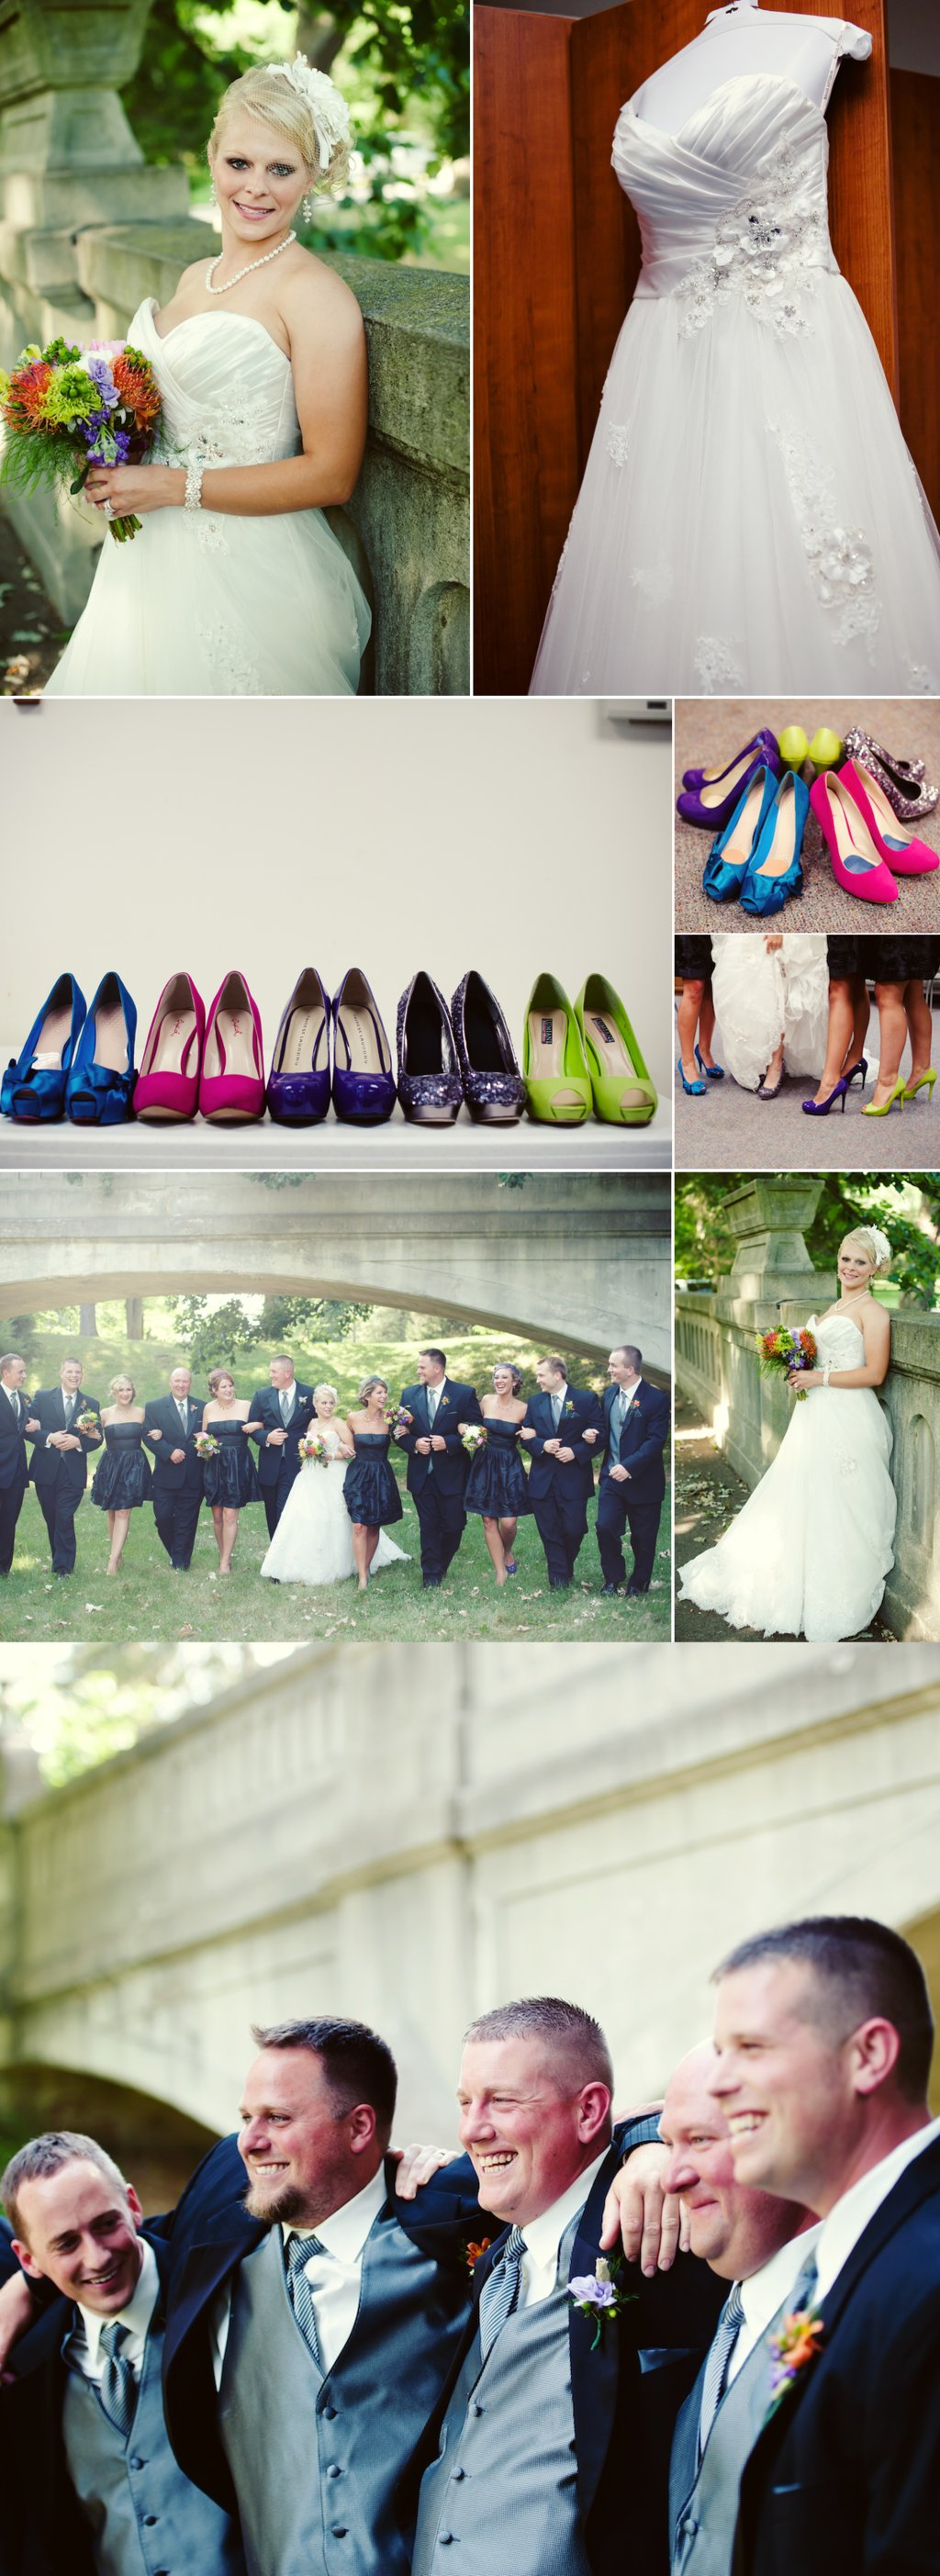 Summer-wedding-in-indiana-classic-and-colorful.full